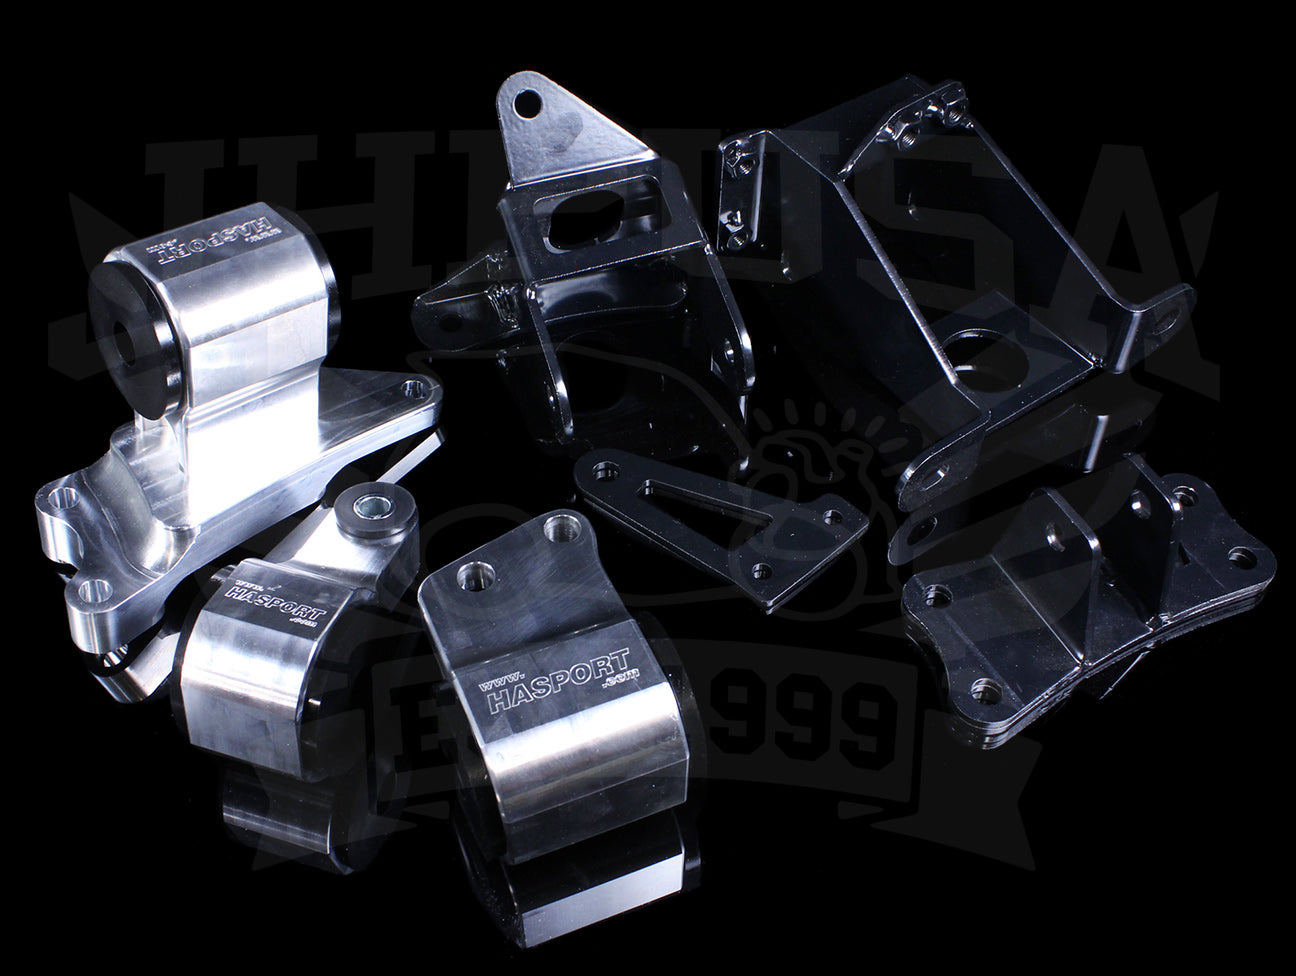 Hasport Billet Replacement Mounts - 2012-15 Civic Si